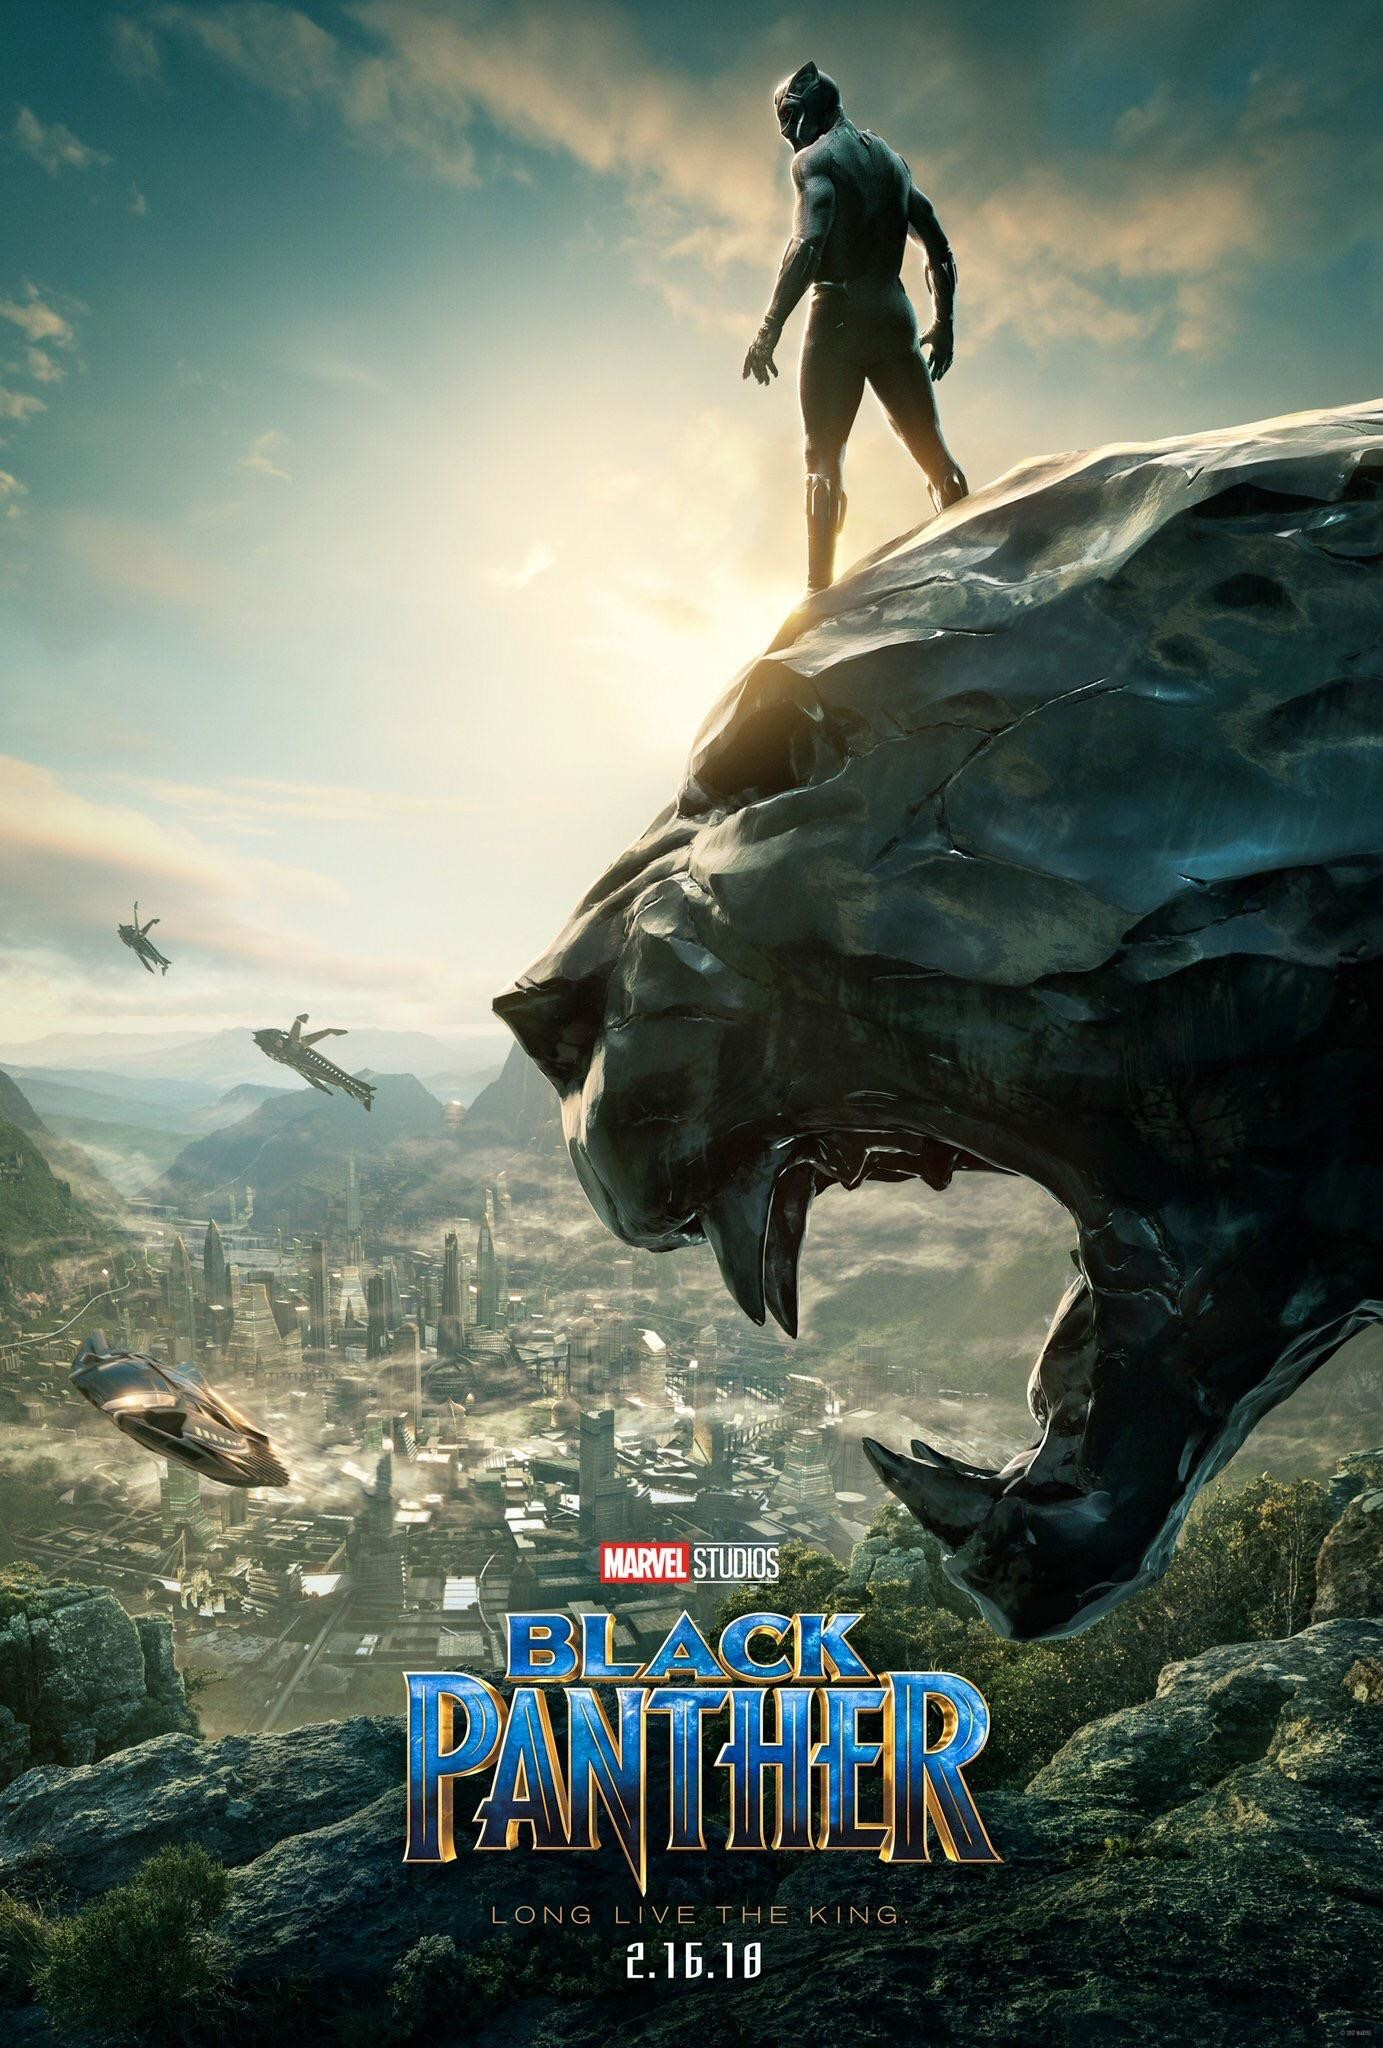 Black Panther (2018) HD Wallpaper From Gallsource.com